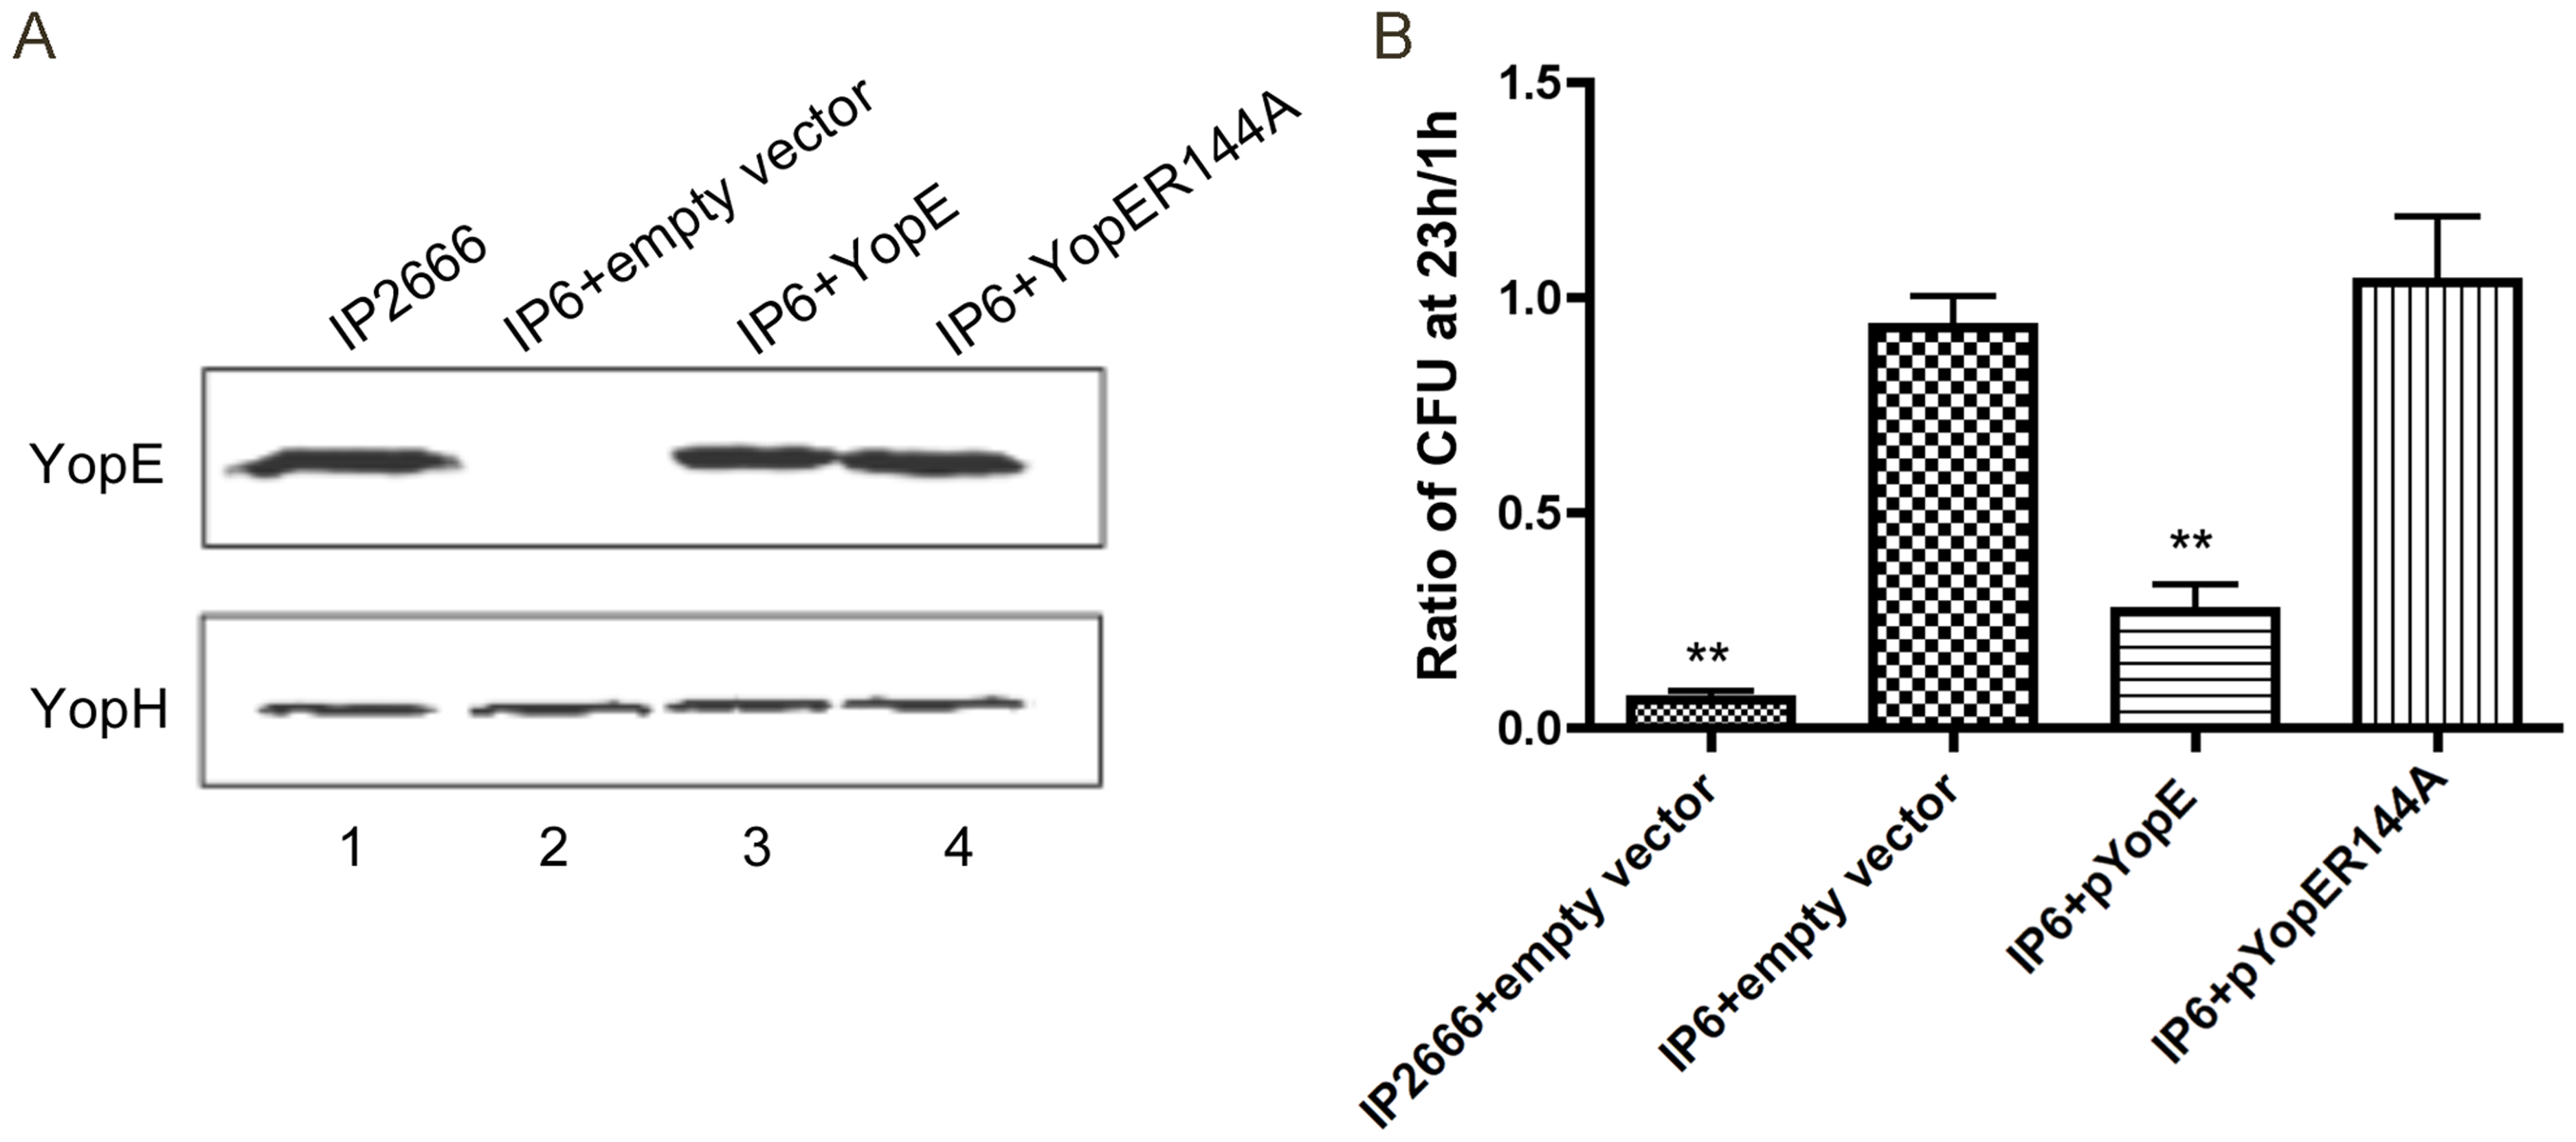 Measurement of YopE production and survival in macrophages by different <i>Y. pseudotuberculosis</i> strains.